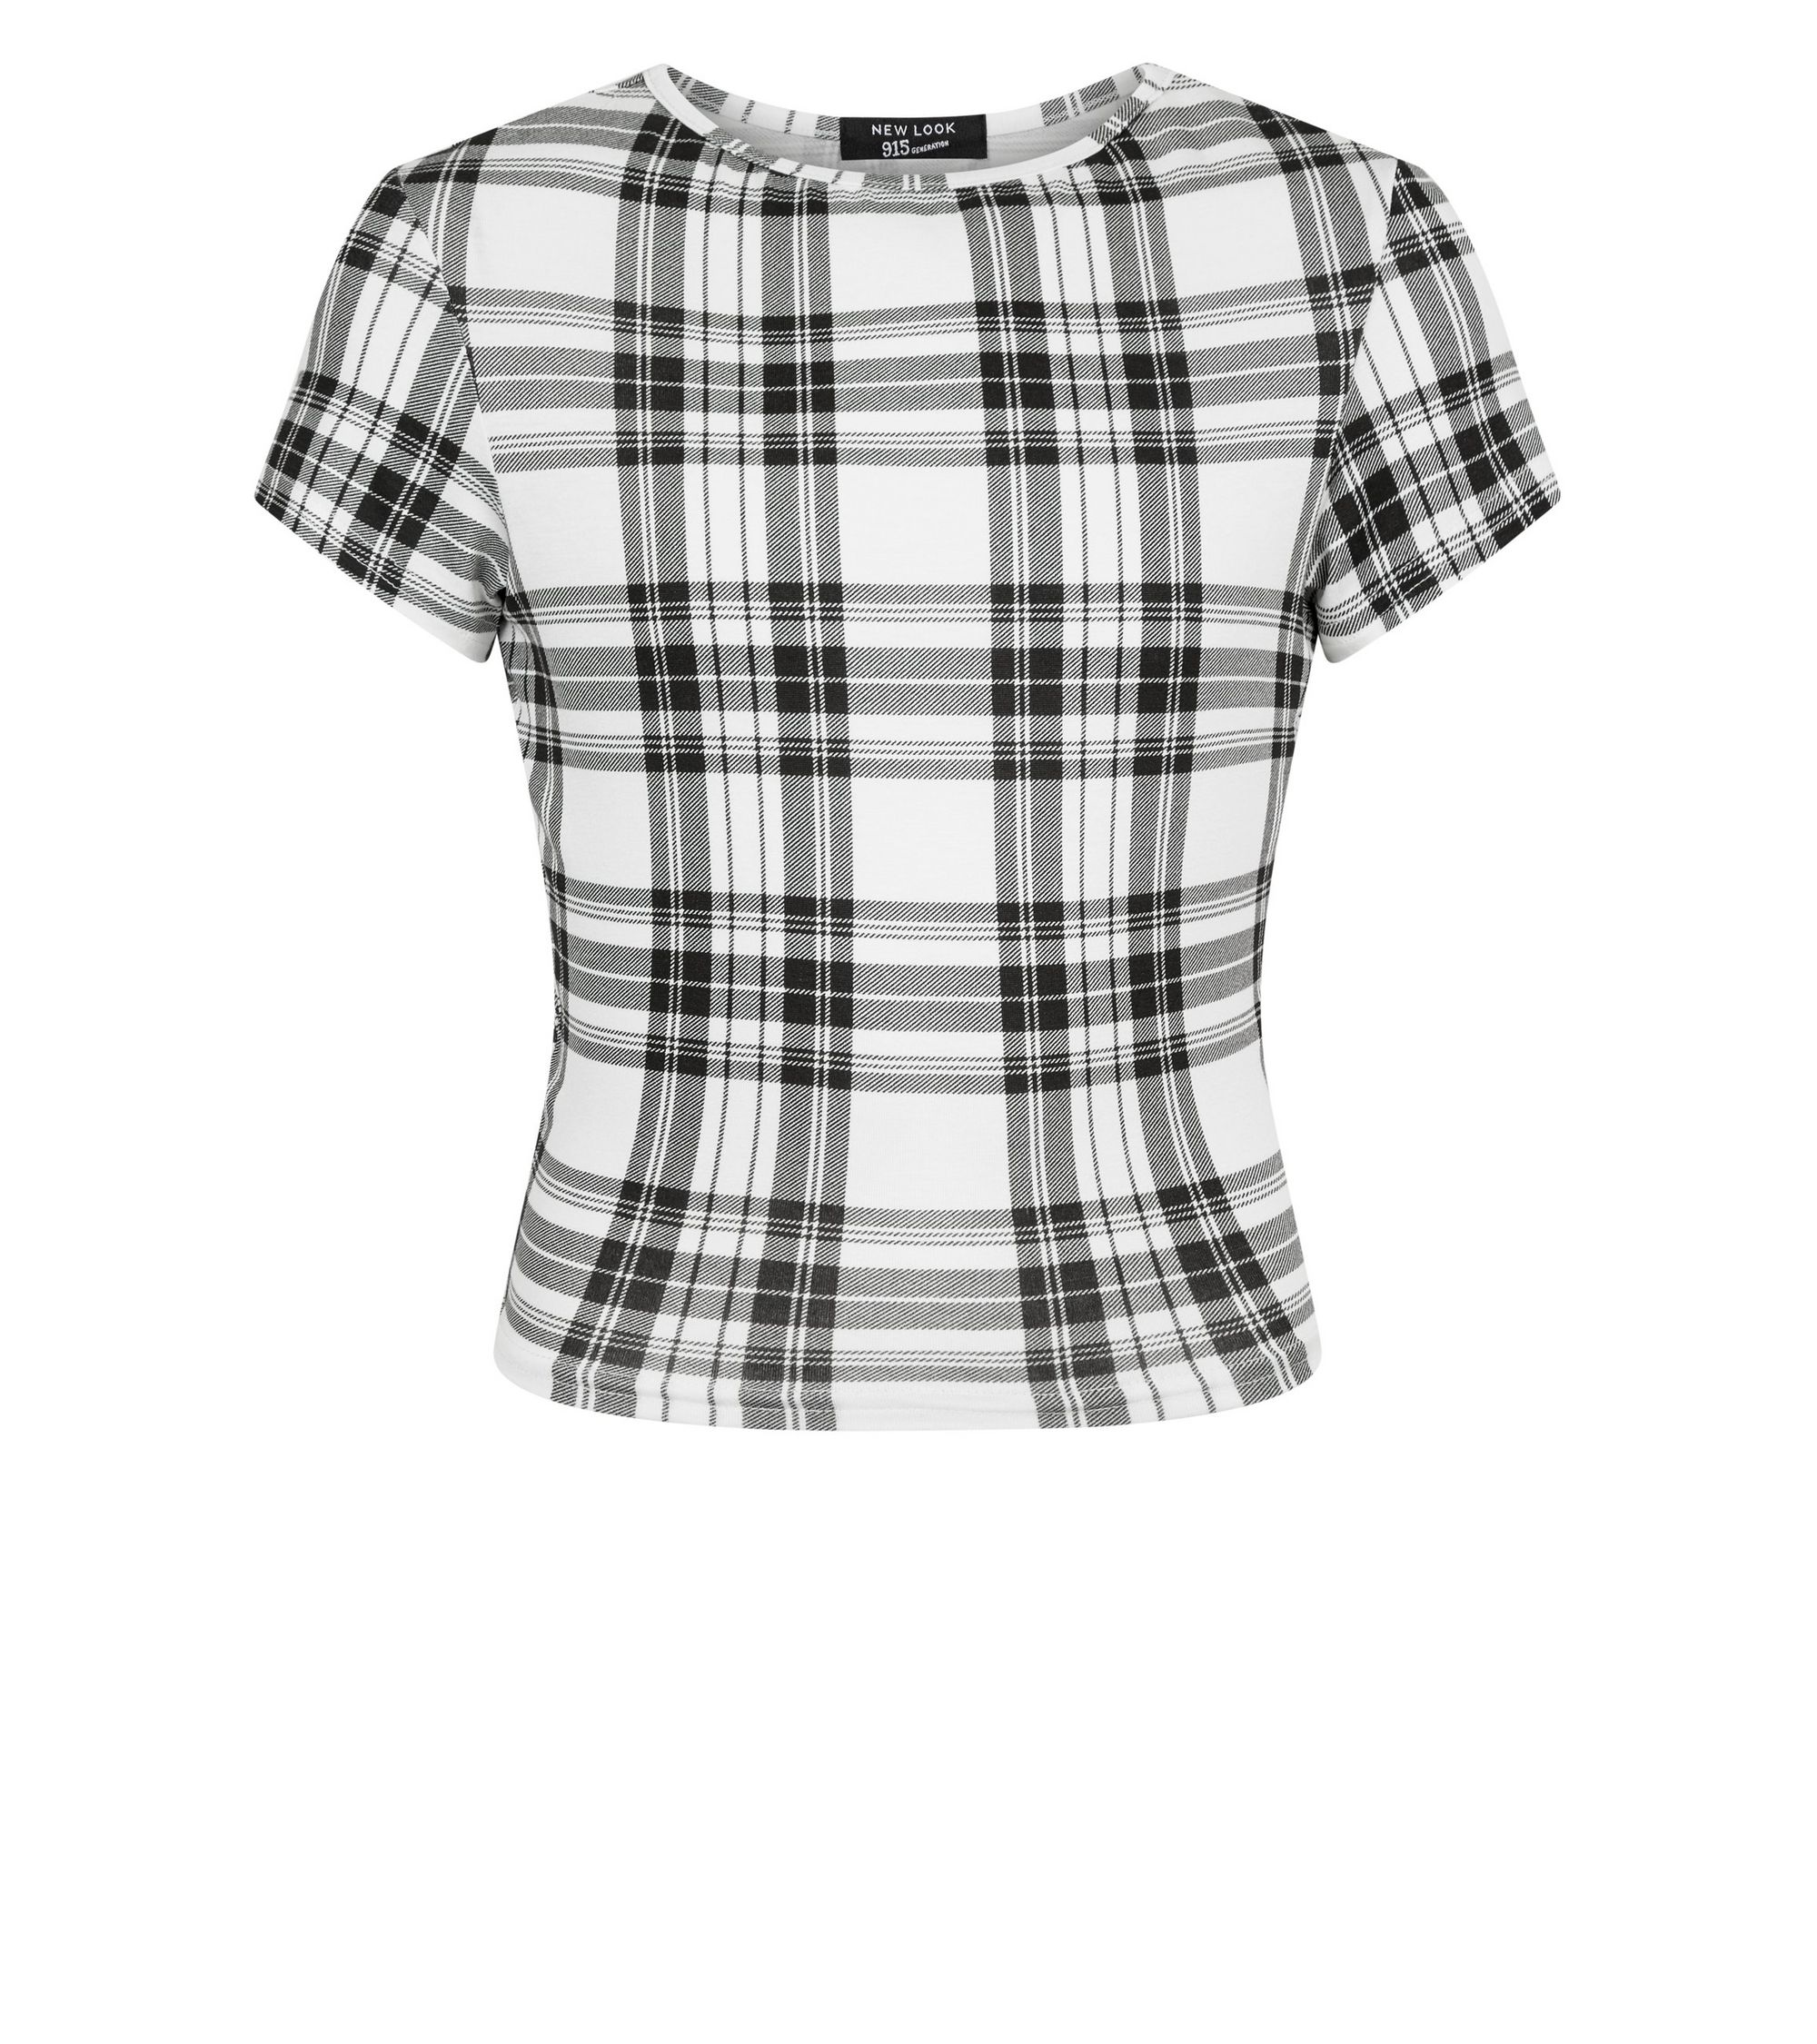 18d90fc847f252 New Look Girls White Check T-Shirt at £8.99 | love the brands